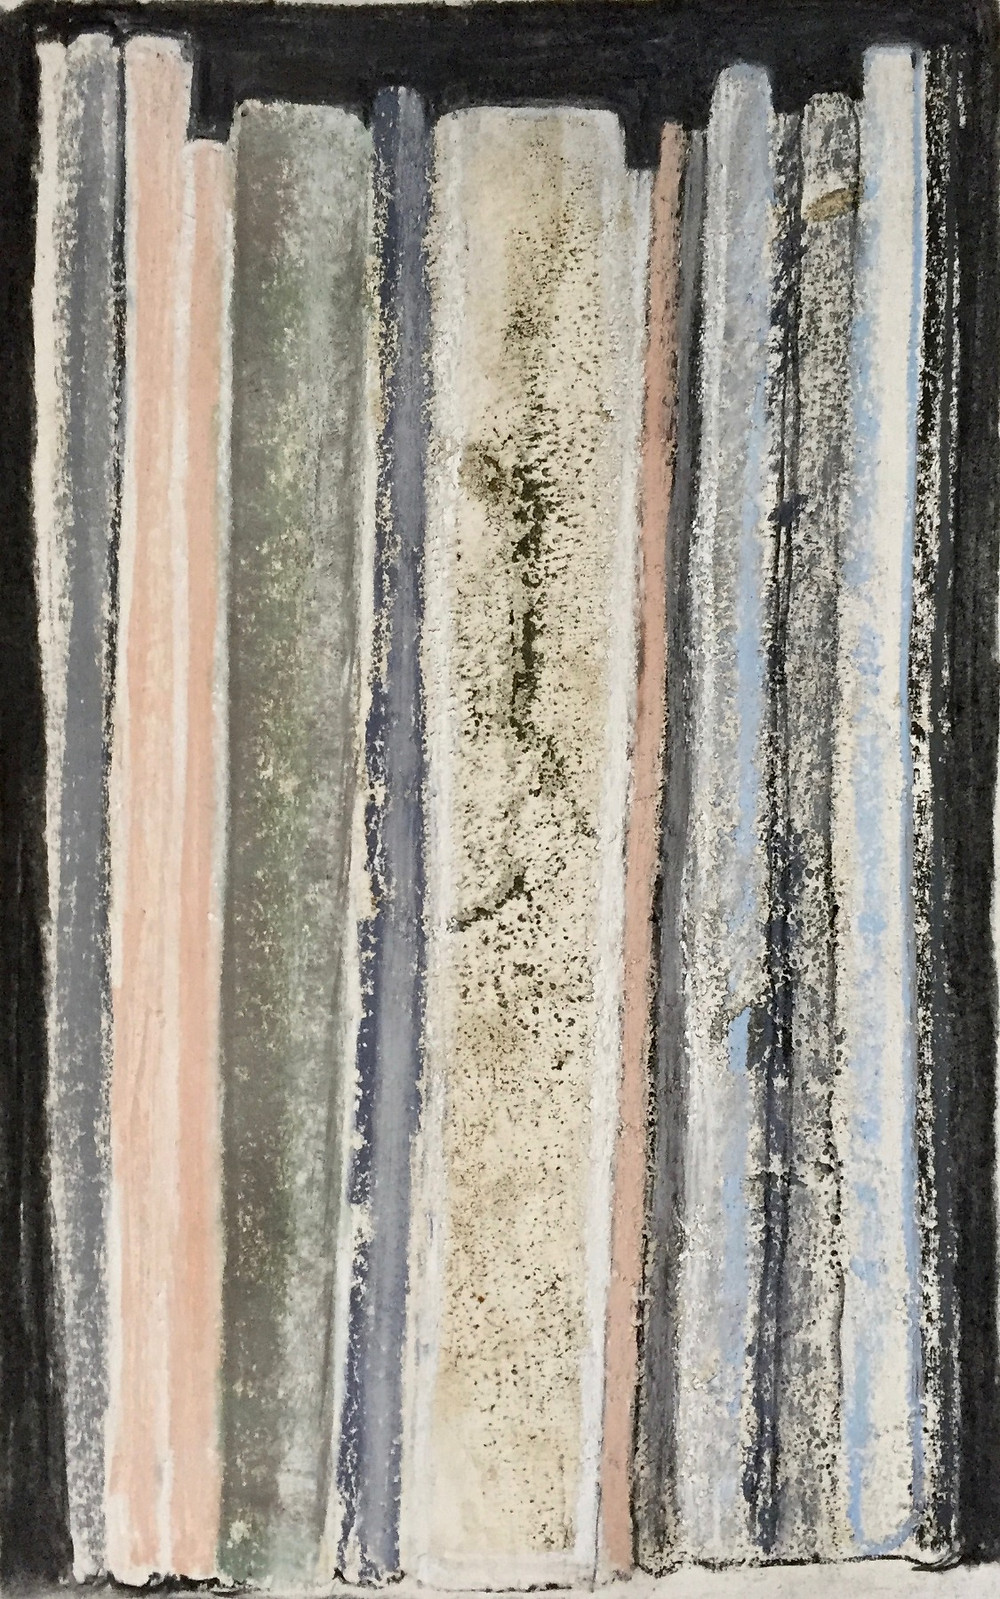 A vertiacl. rectangular image showing a series of vertical, rectangular shapes suggesting a set of upright books. The image features some interesting grainy textures as well as velvety black elements that have been made using charcoal. Other colours include greys, pink, umber and variations of grey-green.